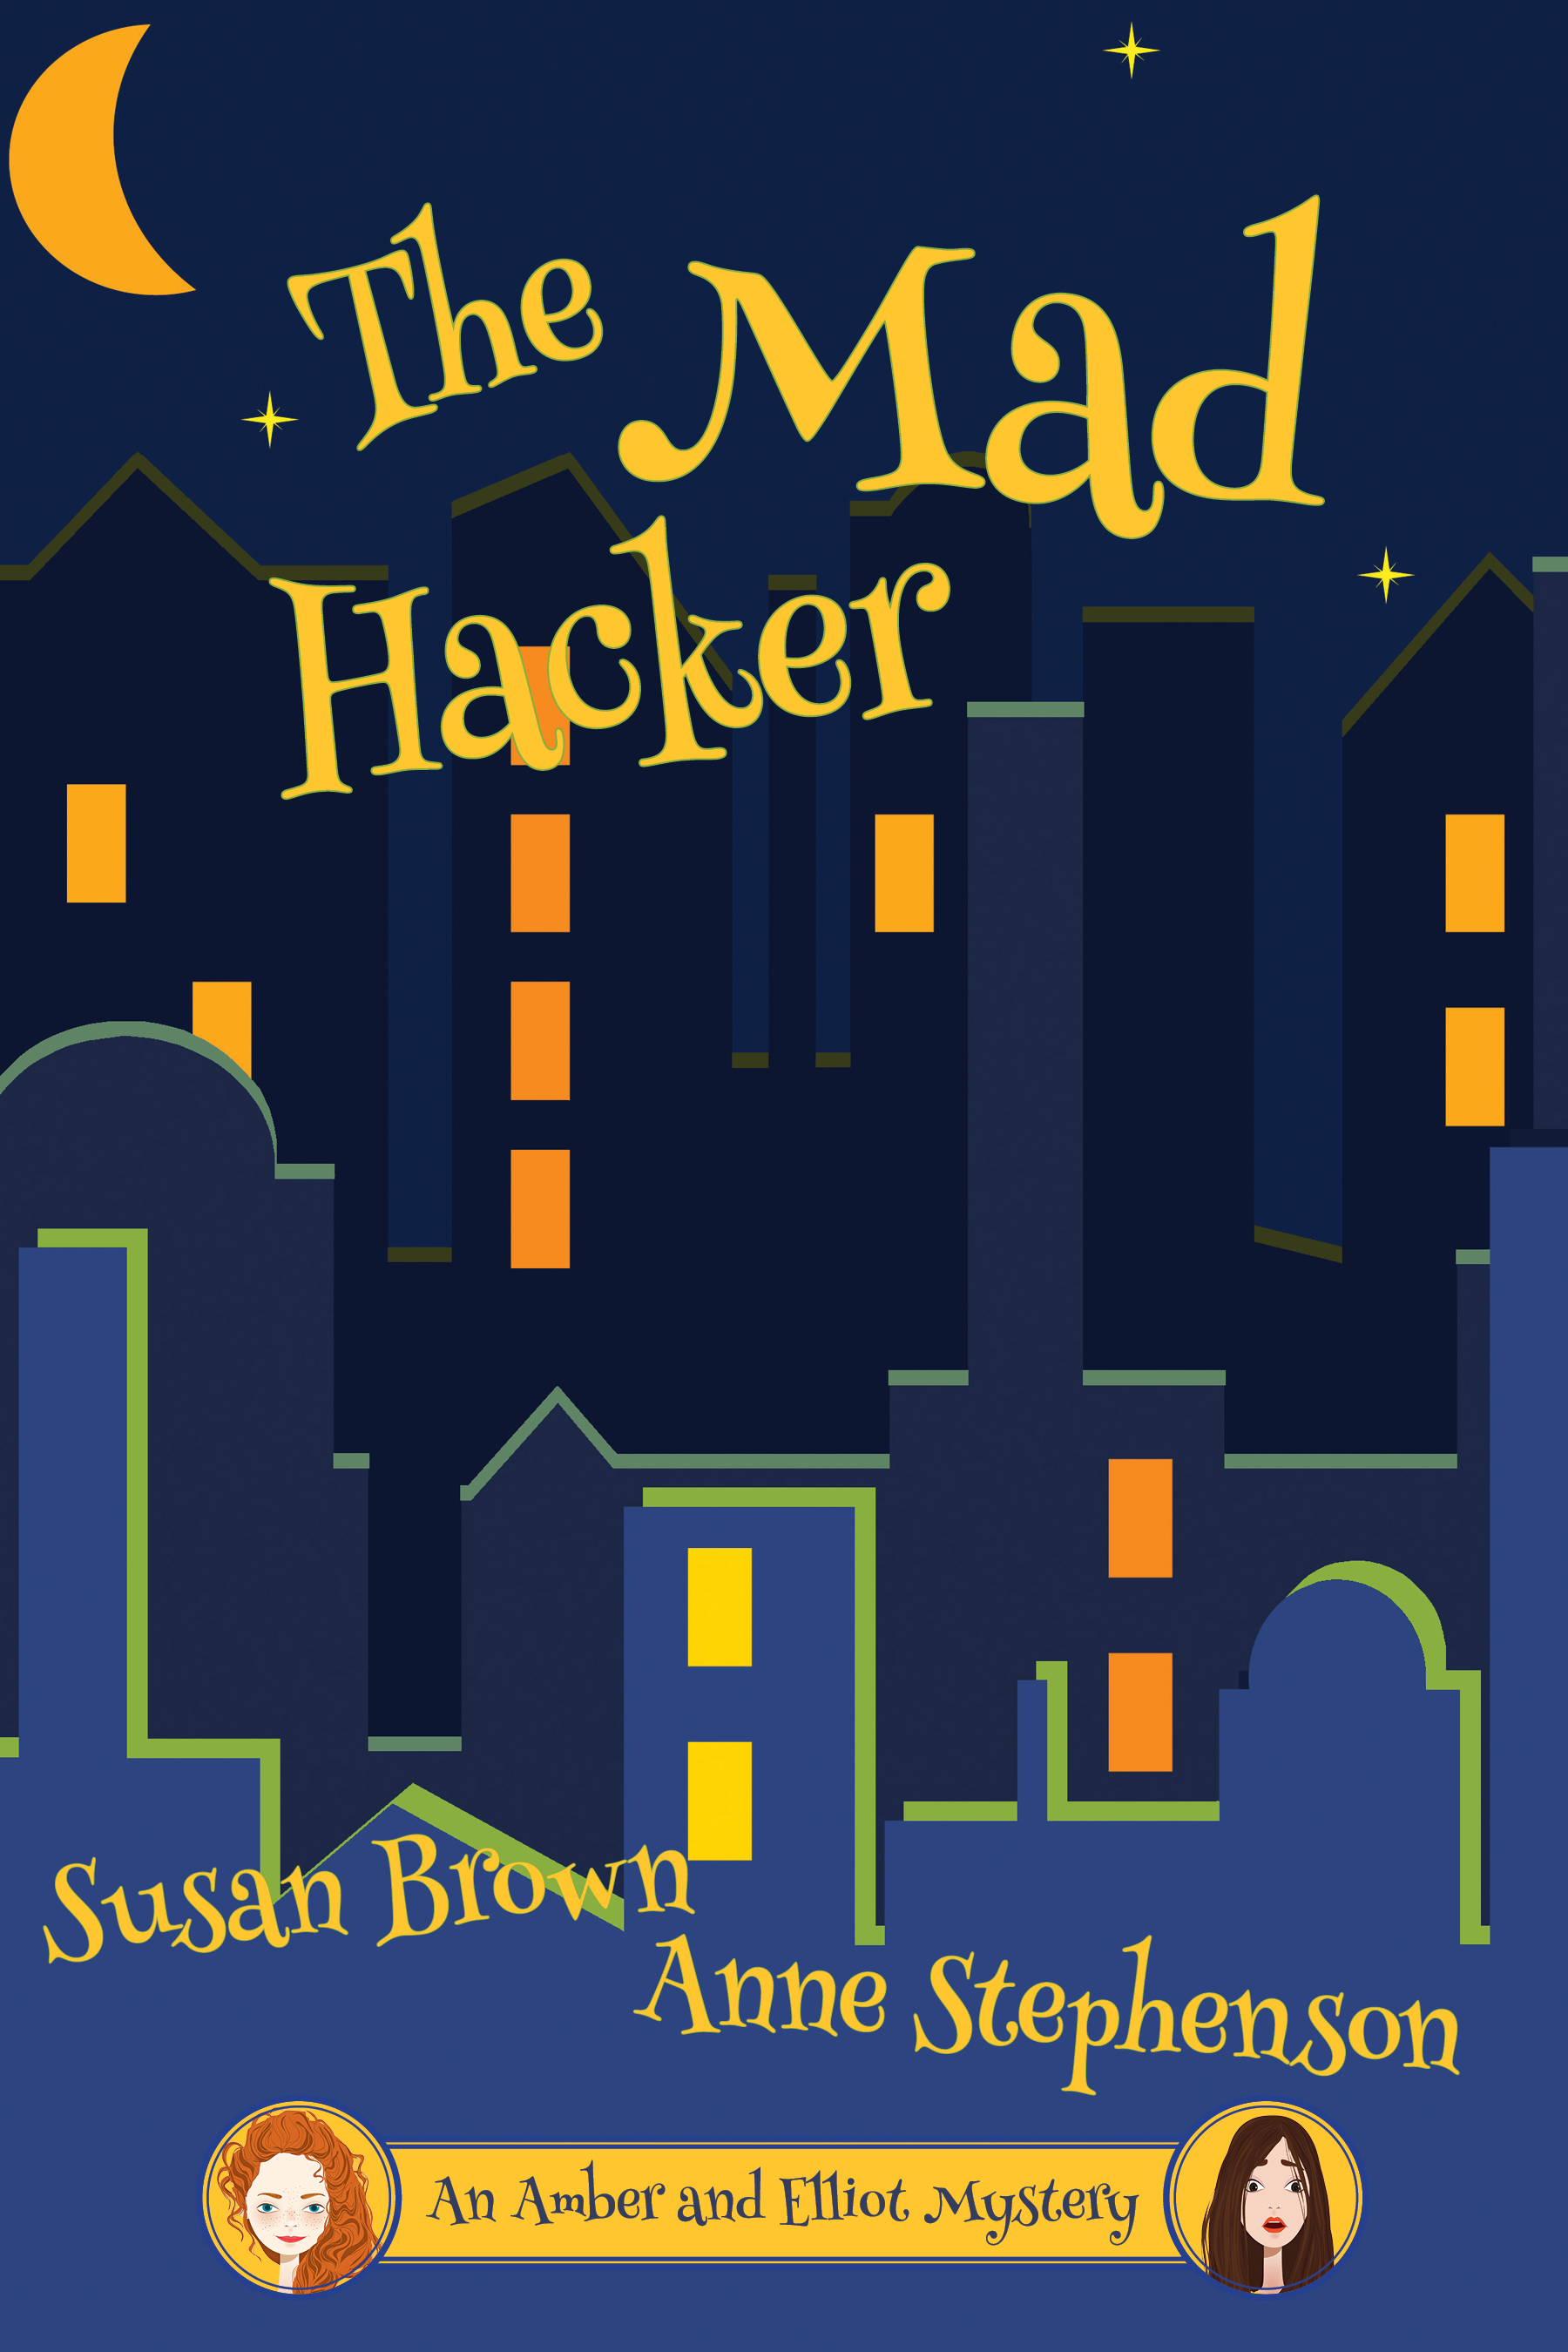 The Mad Hacker by Susan Brown and Anne Stephenson